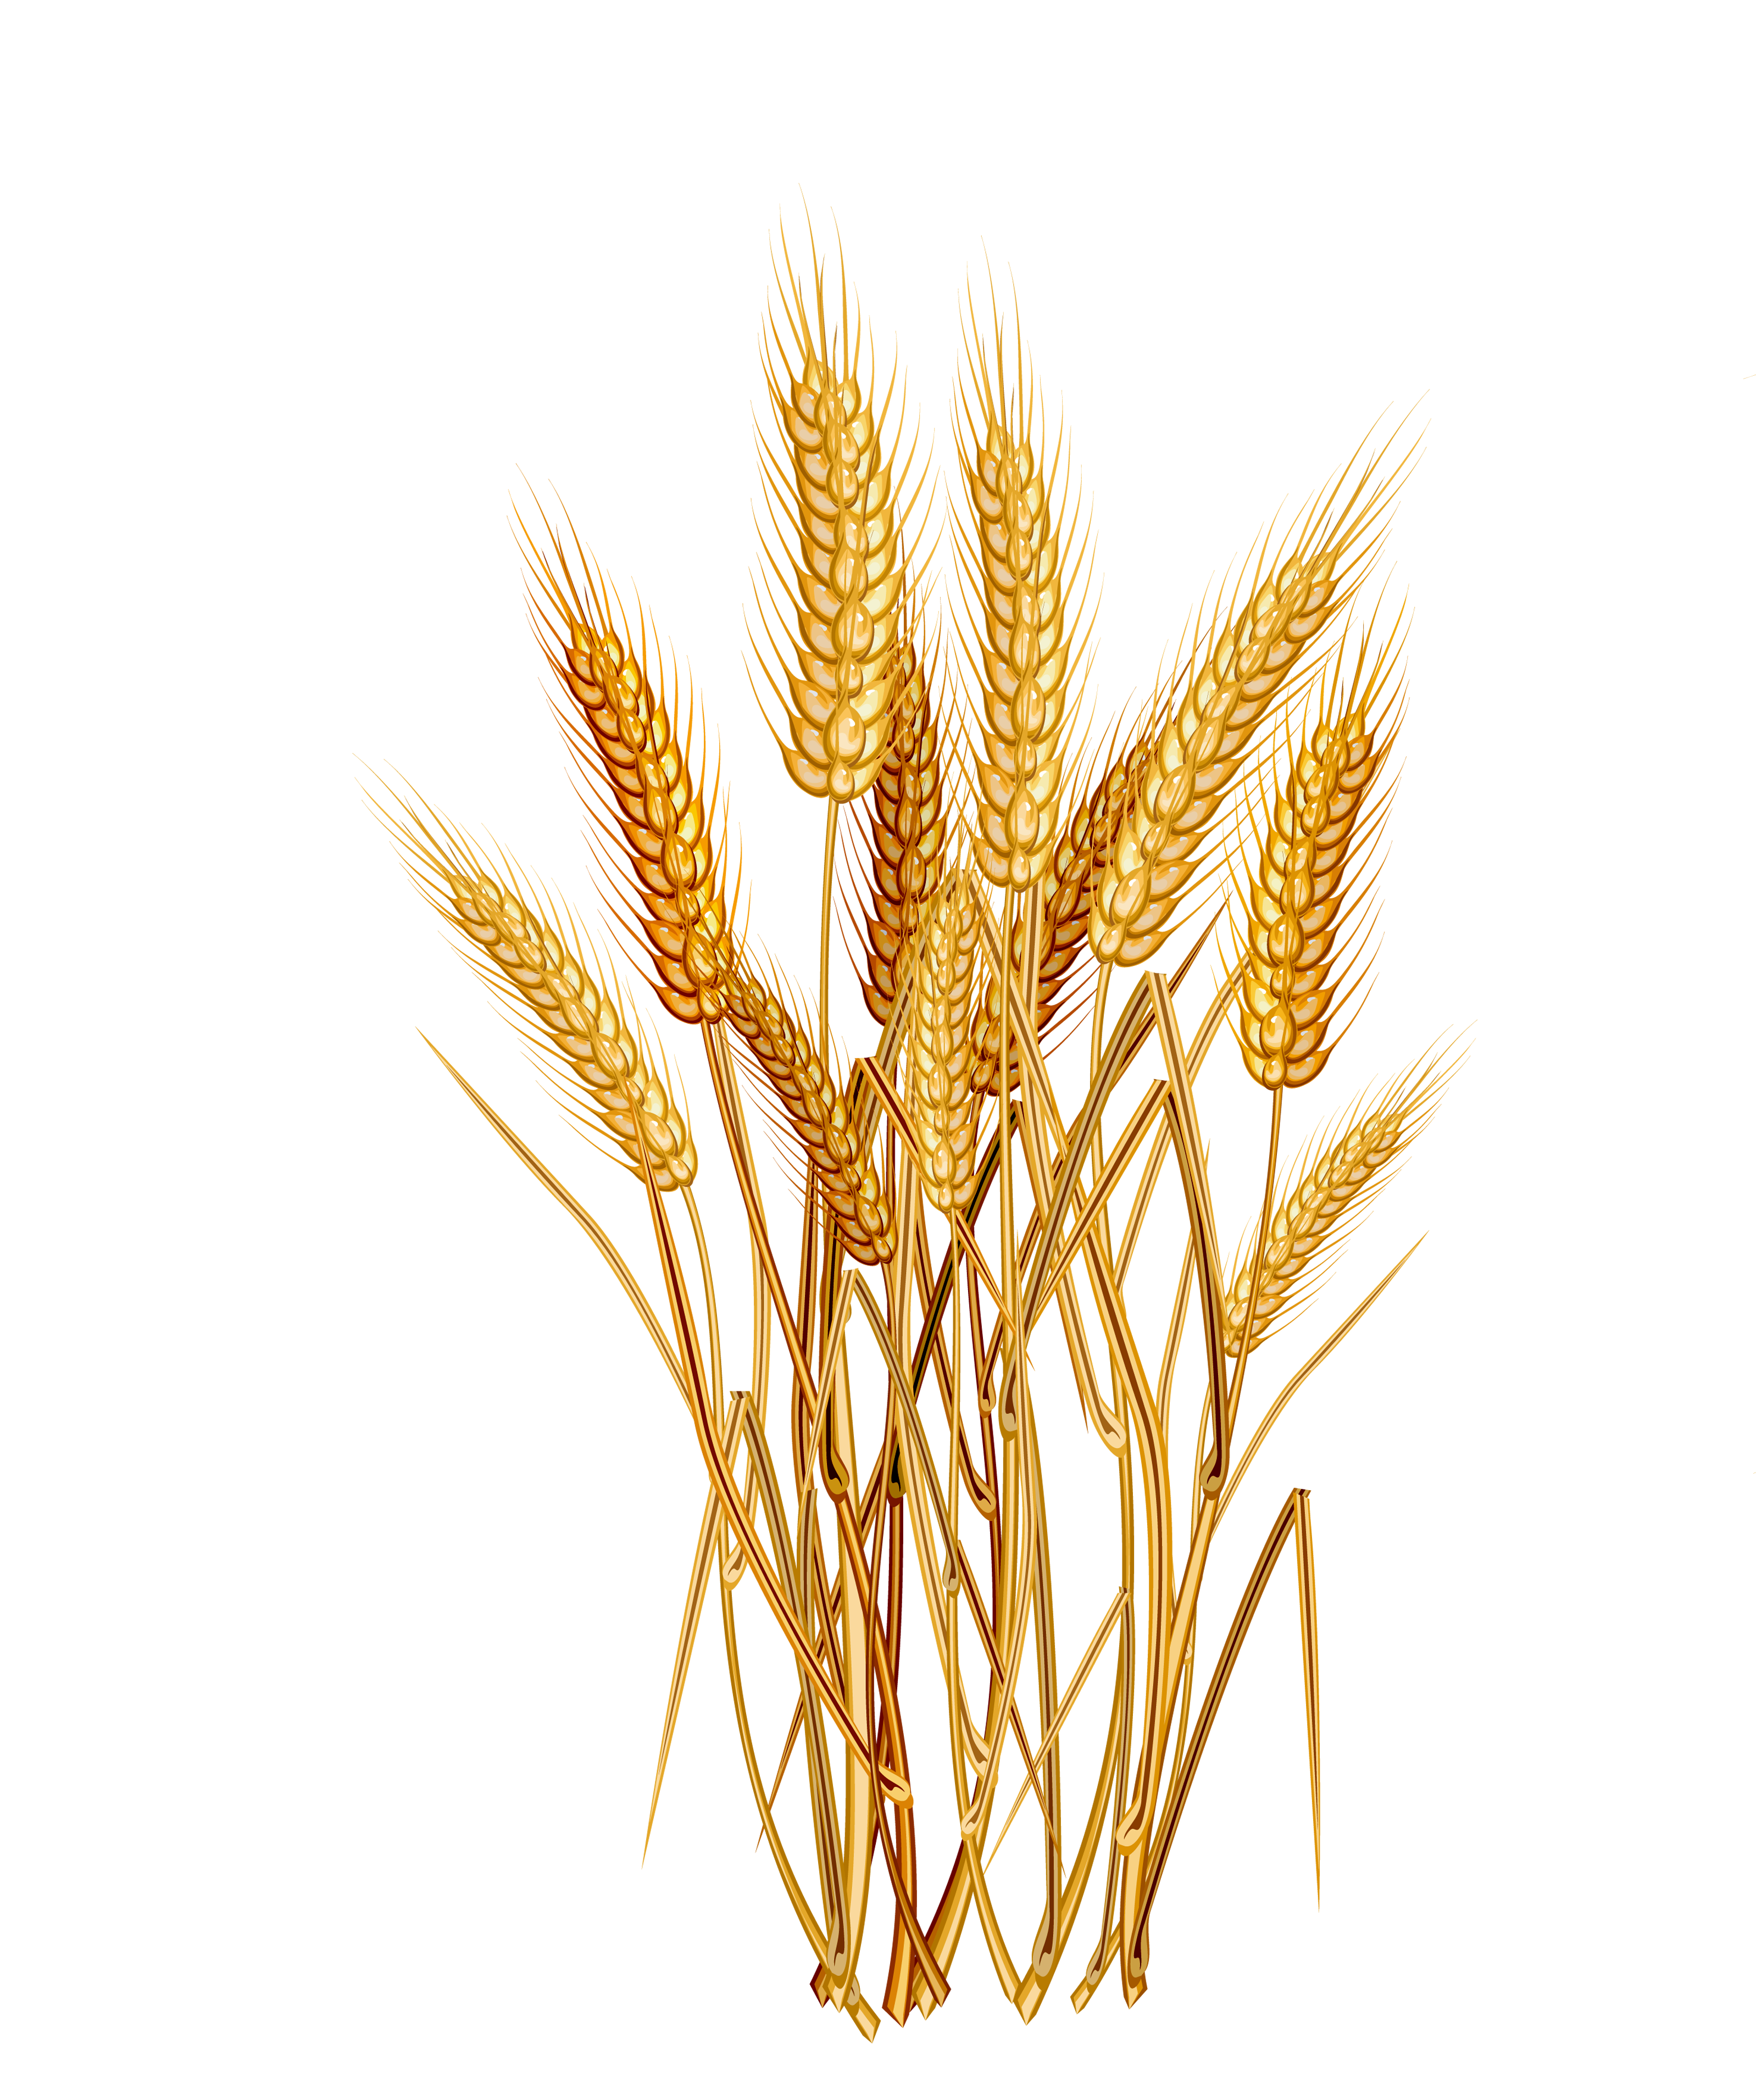 Png image purepng free. Wheat clipart wheat stem